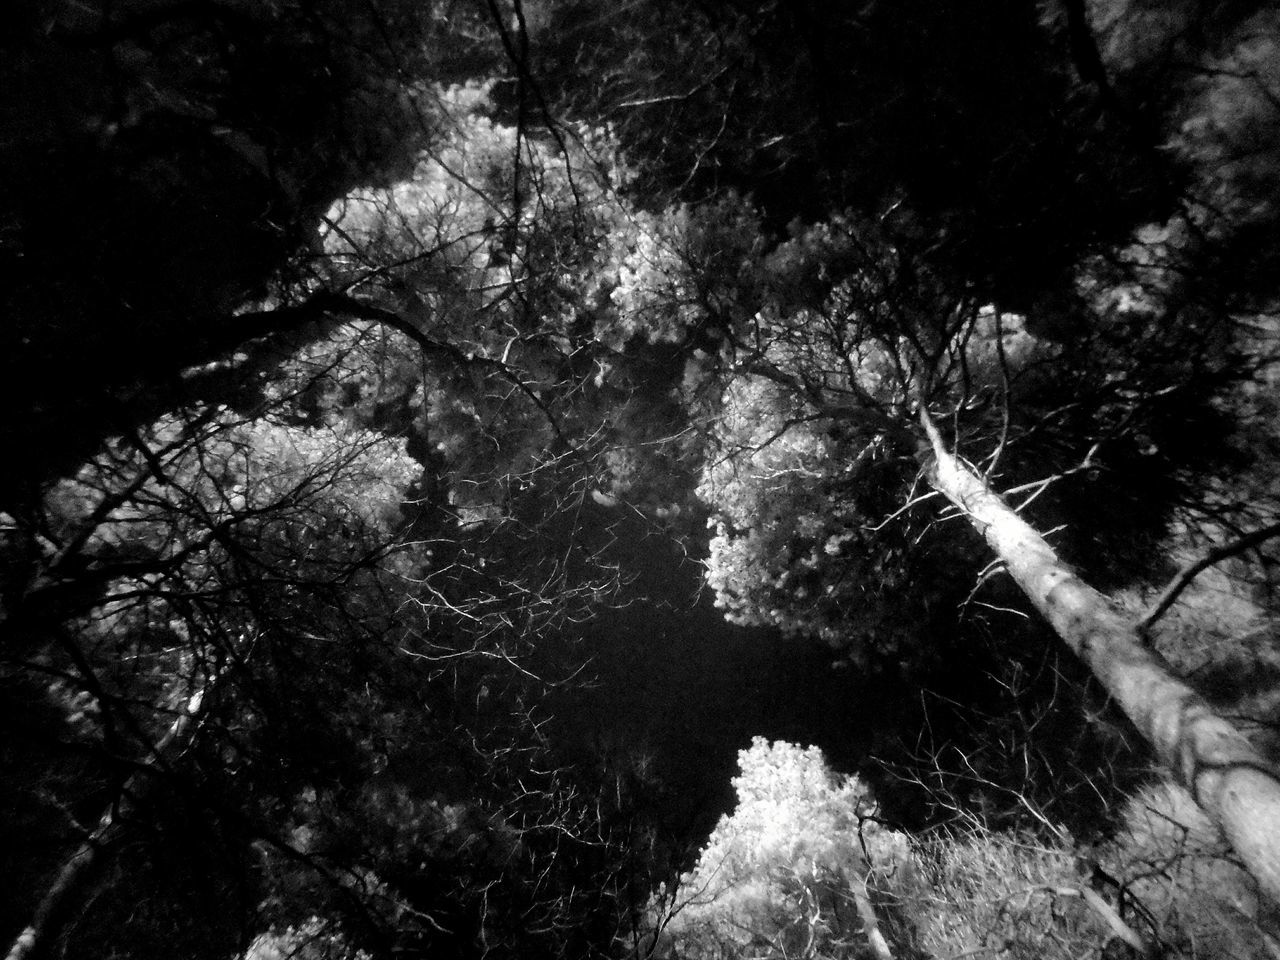 Tree Nature Low Angle View Sky Outdoors Infrared Photo Infra-red Infrared Photography Infrared Infraredphotography Black And White Photography Black & White Black&white Blackandwhite Branch Forest Tranquility Nature Tree Low Angle View Branches Blackandwhite Photography Blackandwhitephotography Complexity